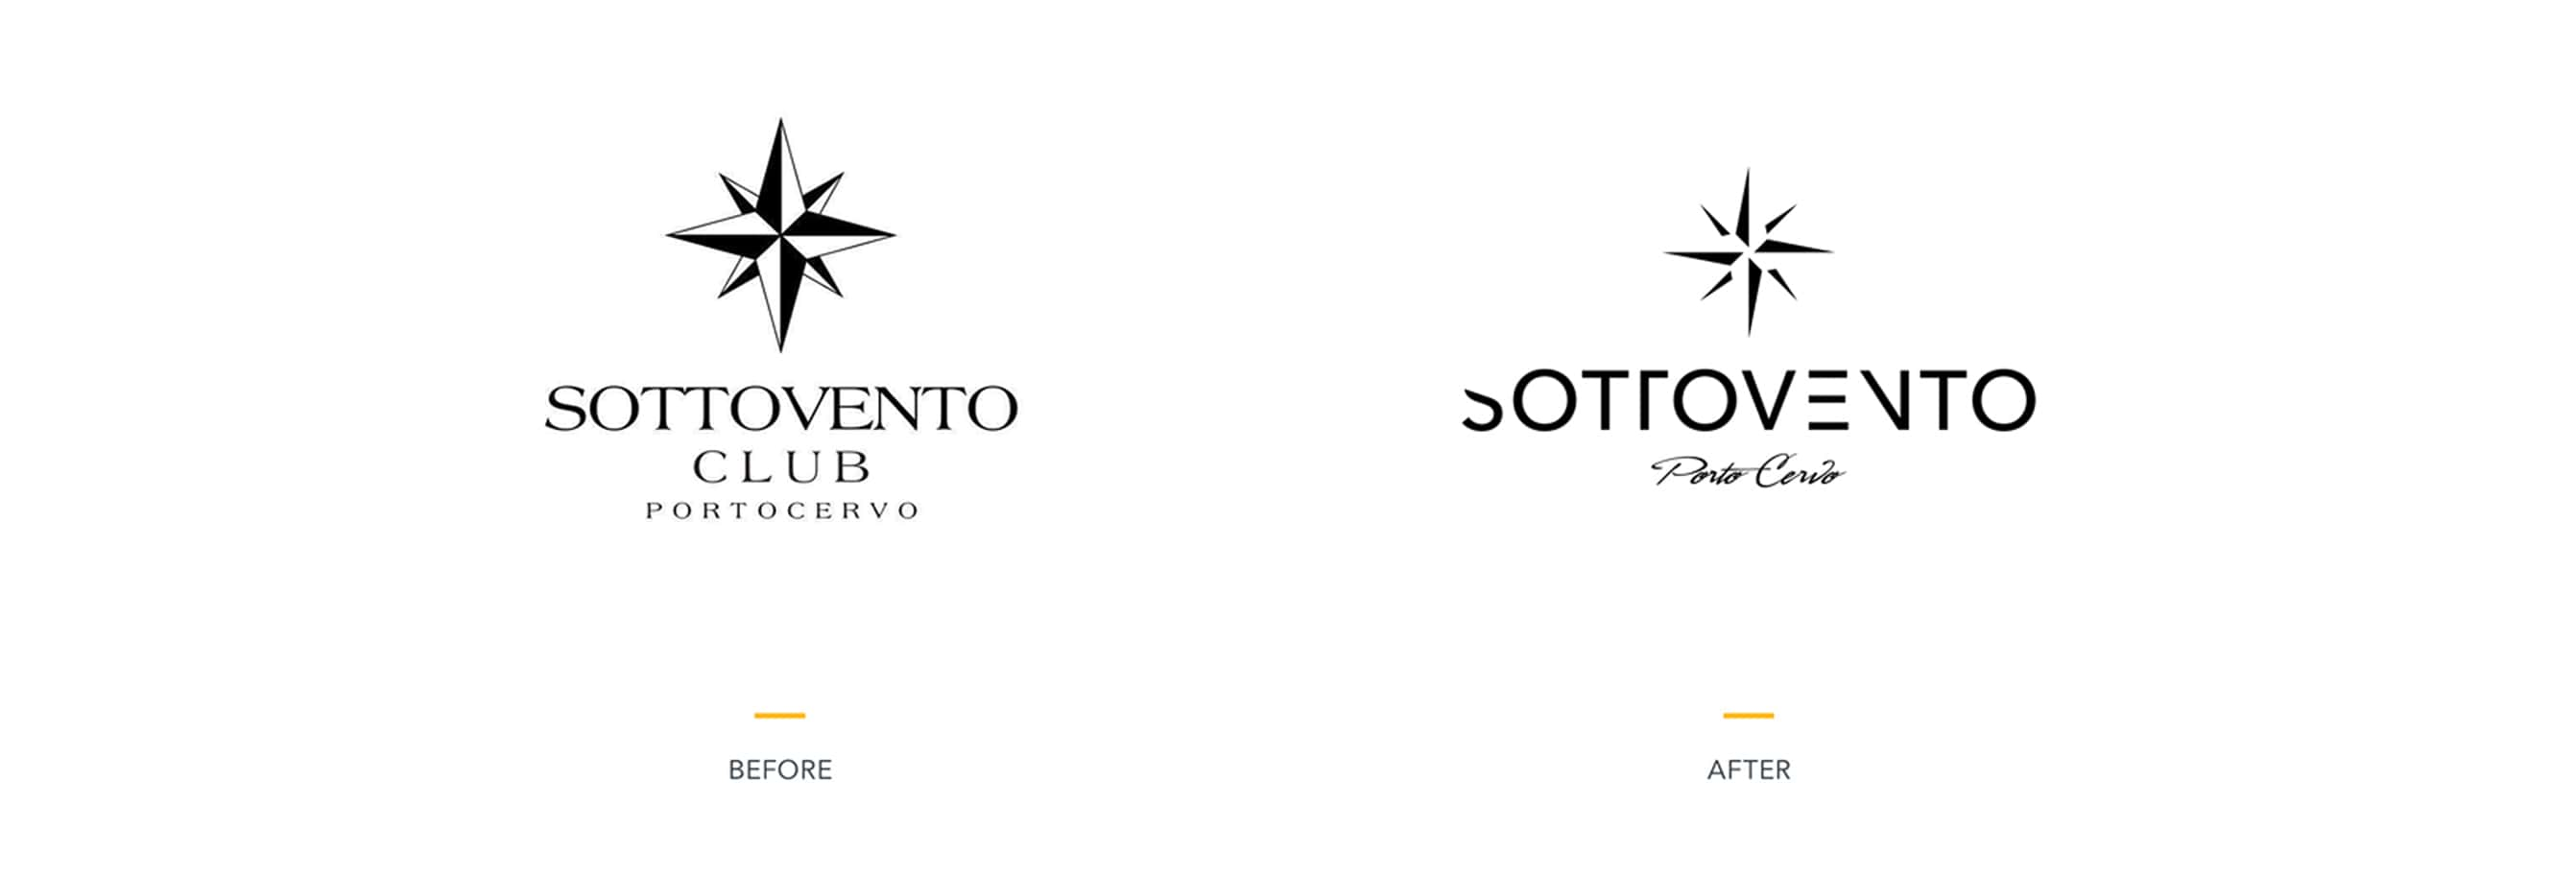 Brand repositioning and strategy for Sottovento Club – Event design agency Luther Dsgn